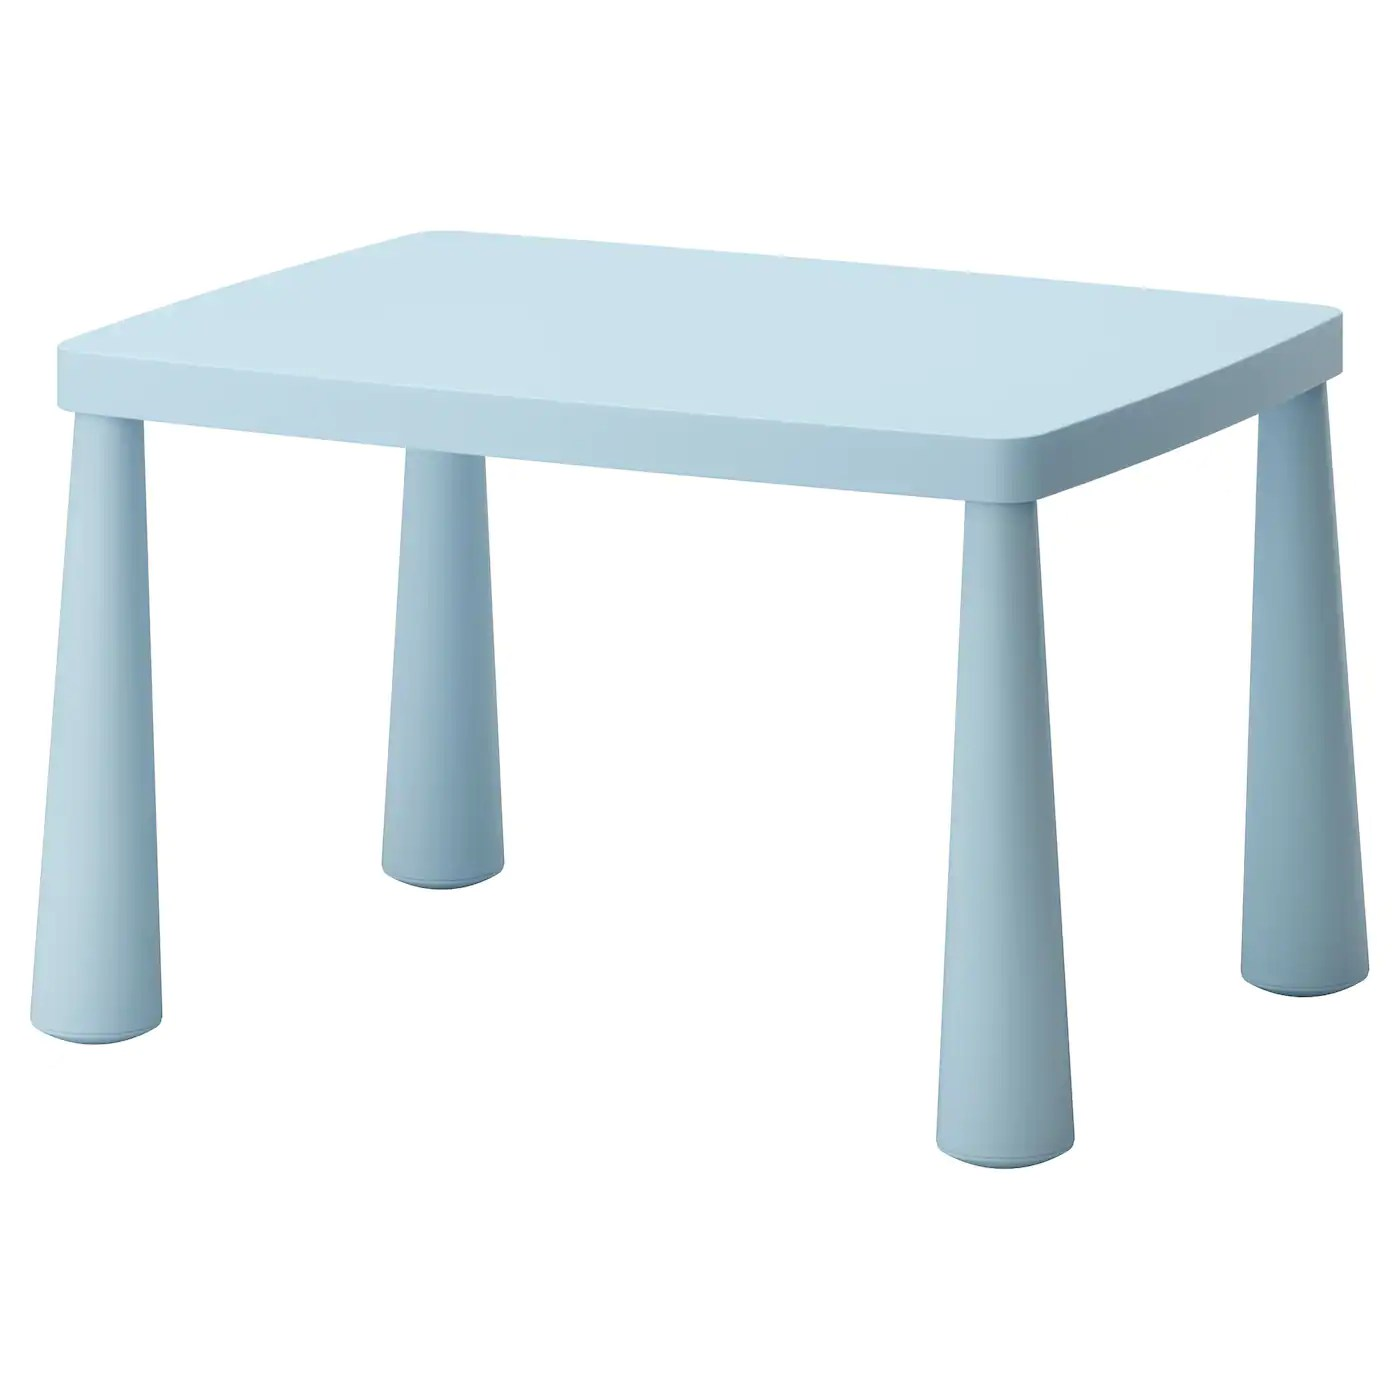 table and chairs for kids bumbo chair accessories mammut children 39s in outdoor light blue 77x55 cm ikea